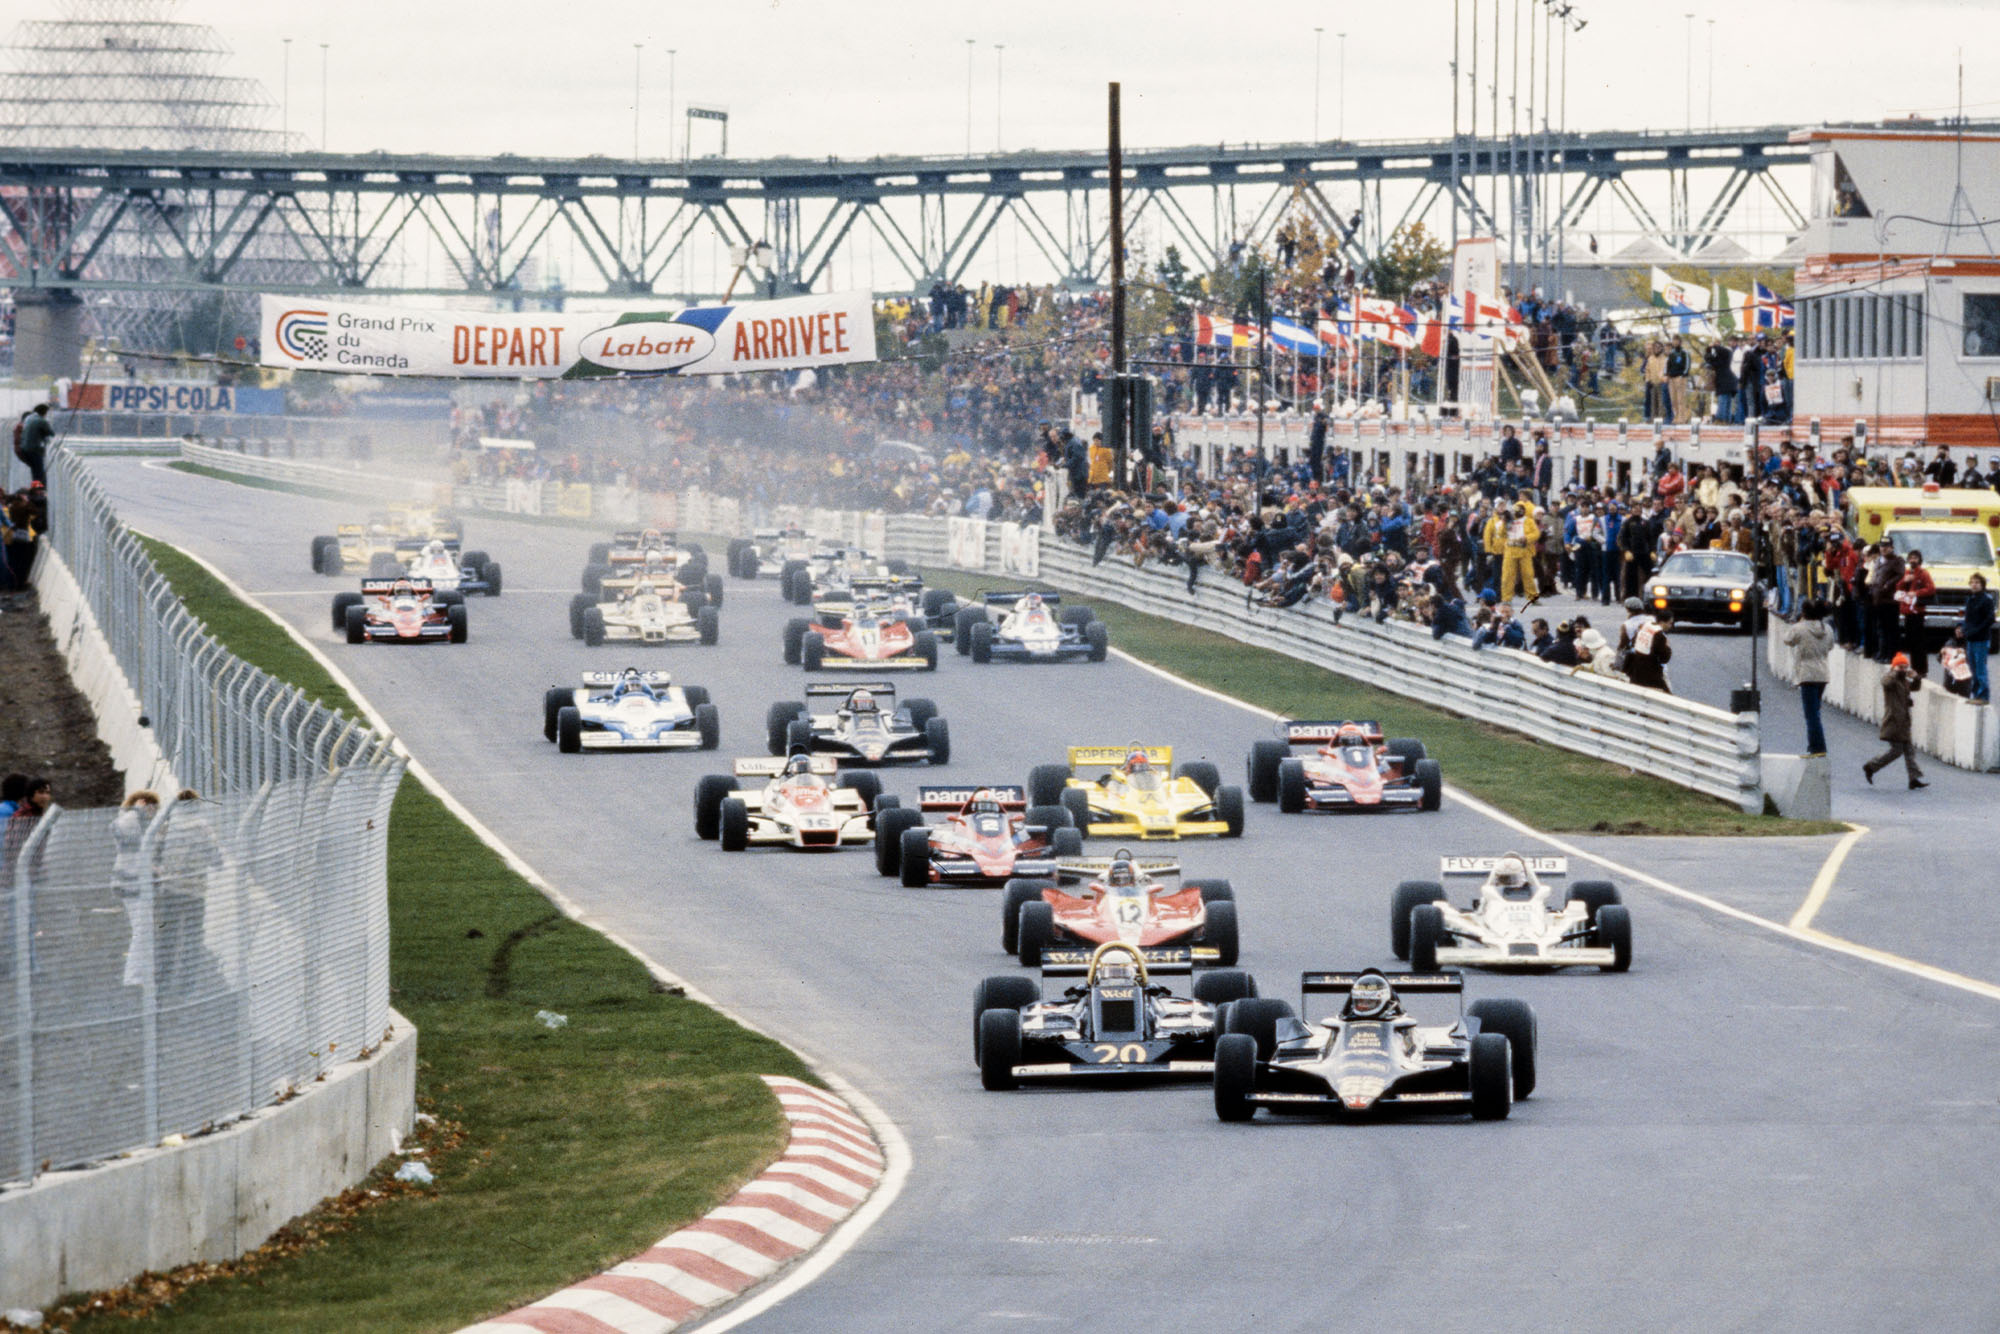 Jean-Pierre Jarier leads the field at the start of the 1978 Canadian Grand Prix, Montreal.